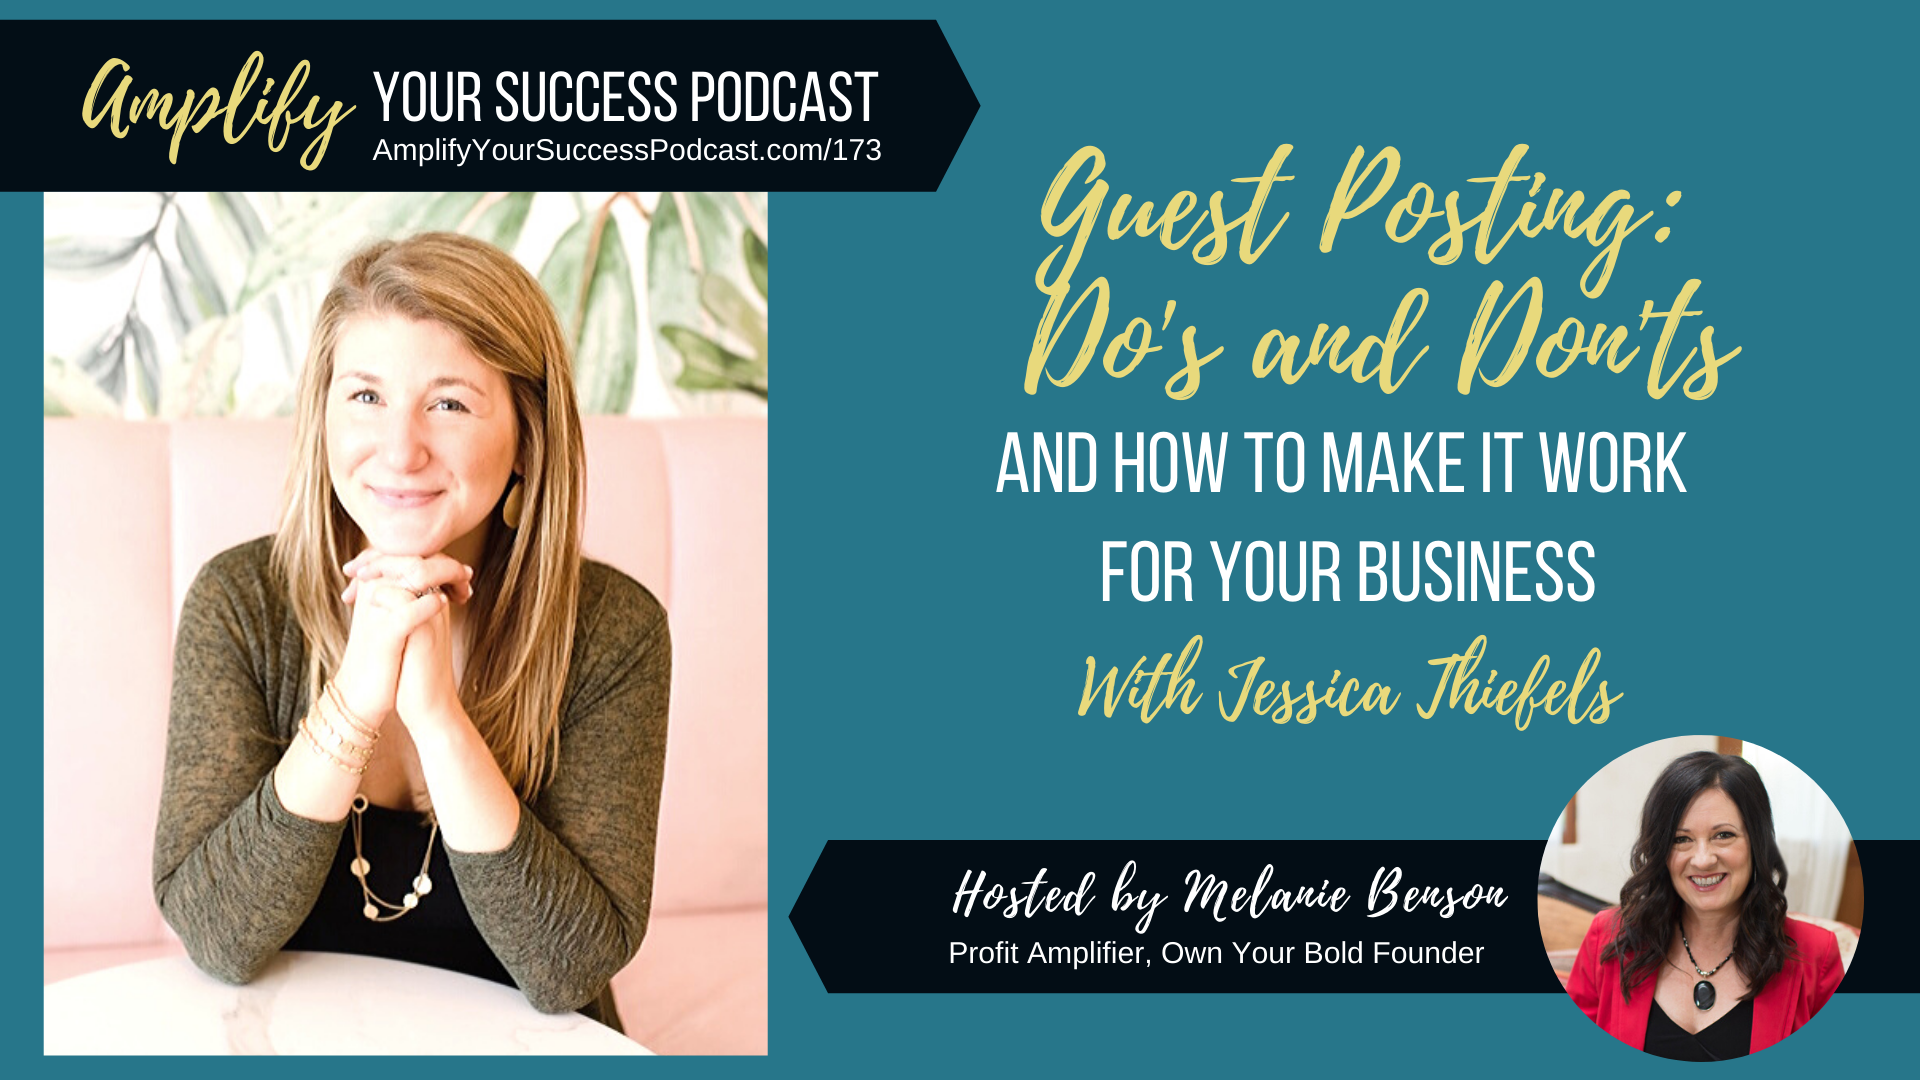 Guest Posting Do's and Don'ts with Jessica Thiefels on Amplify Your Success Podcast Episode 173 with Melanie Benson